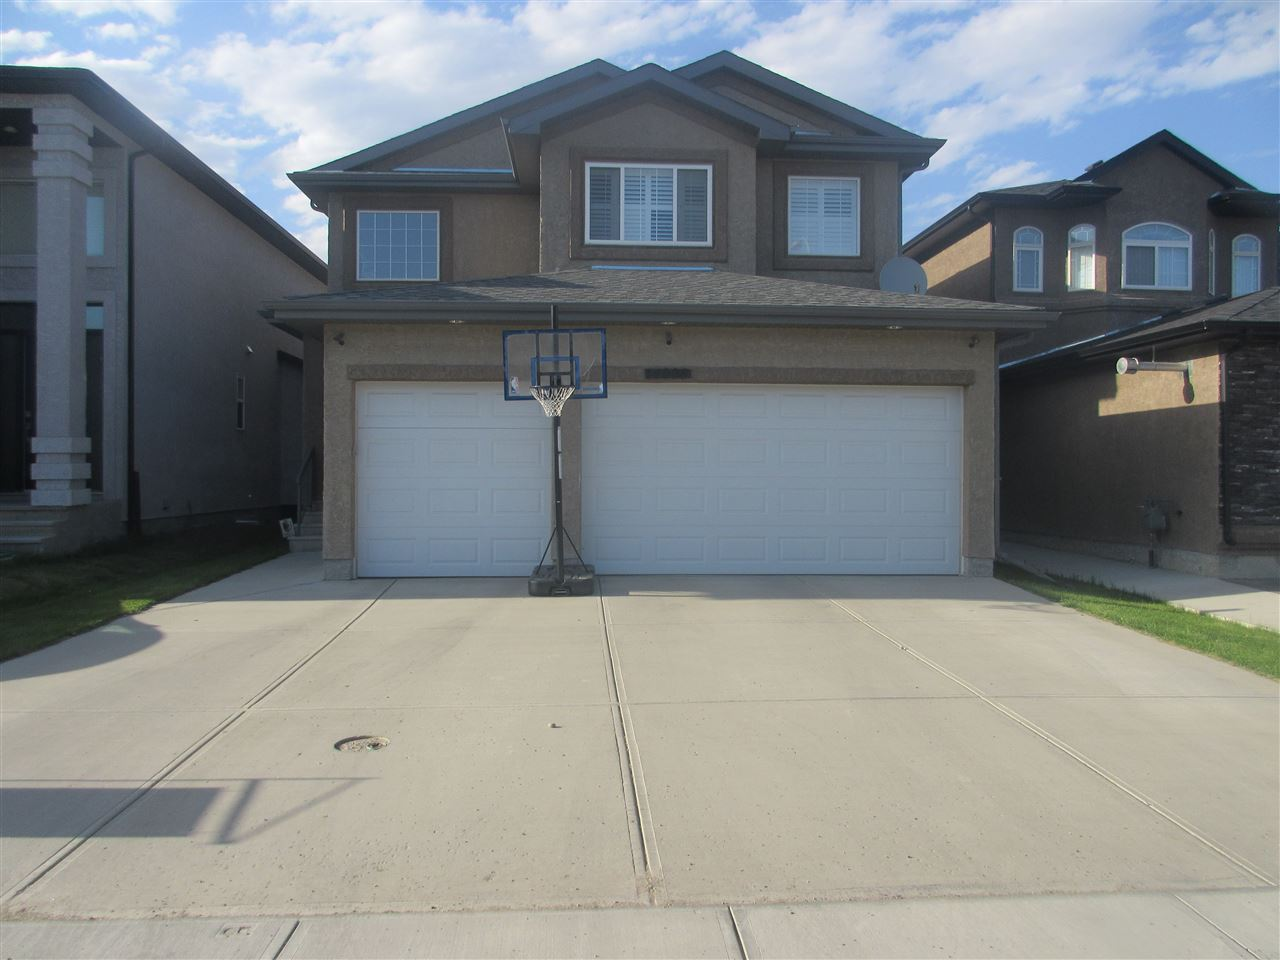 Main Photo: 14008 161 Avenue in Edmonton: Zone 27 House for sale : MLS® # E4056293